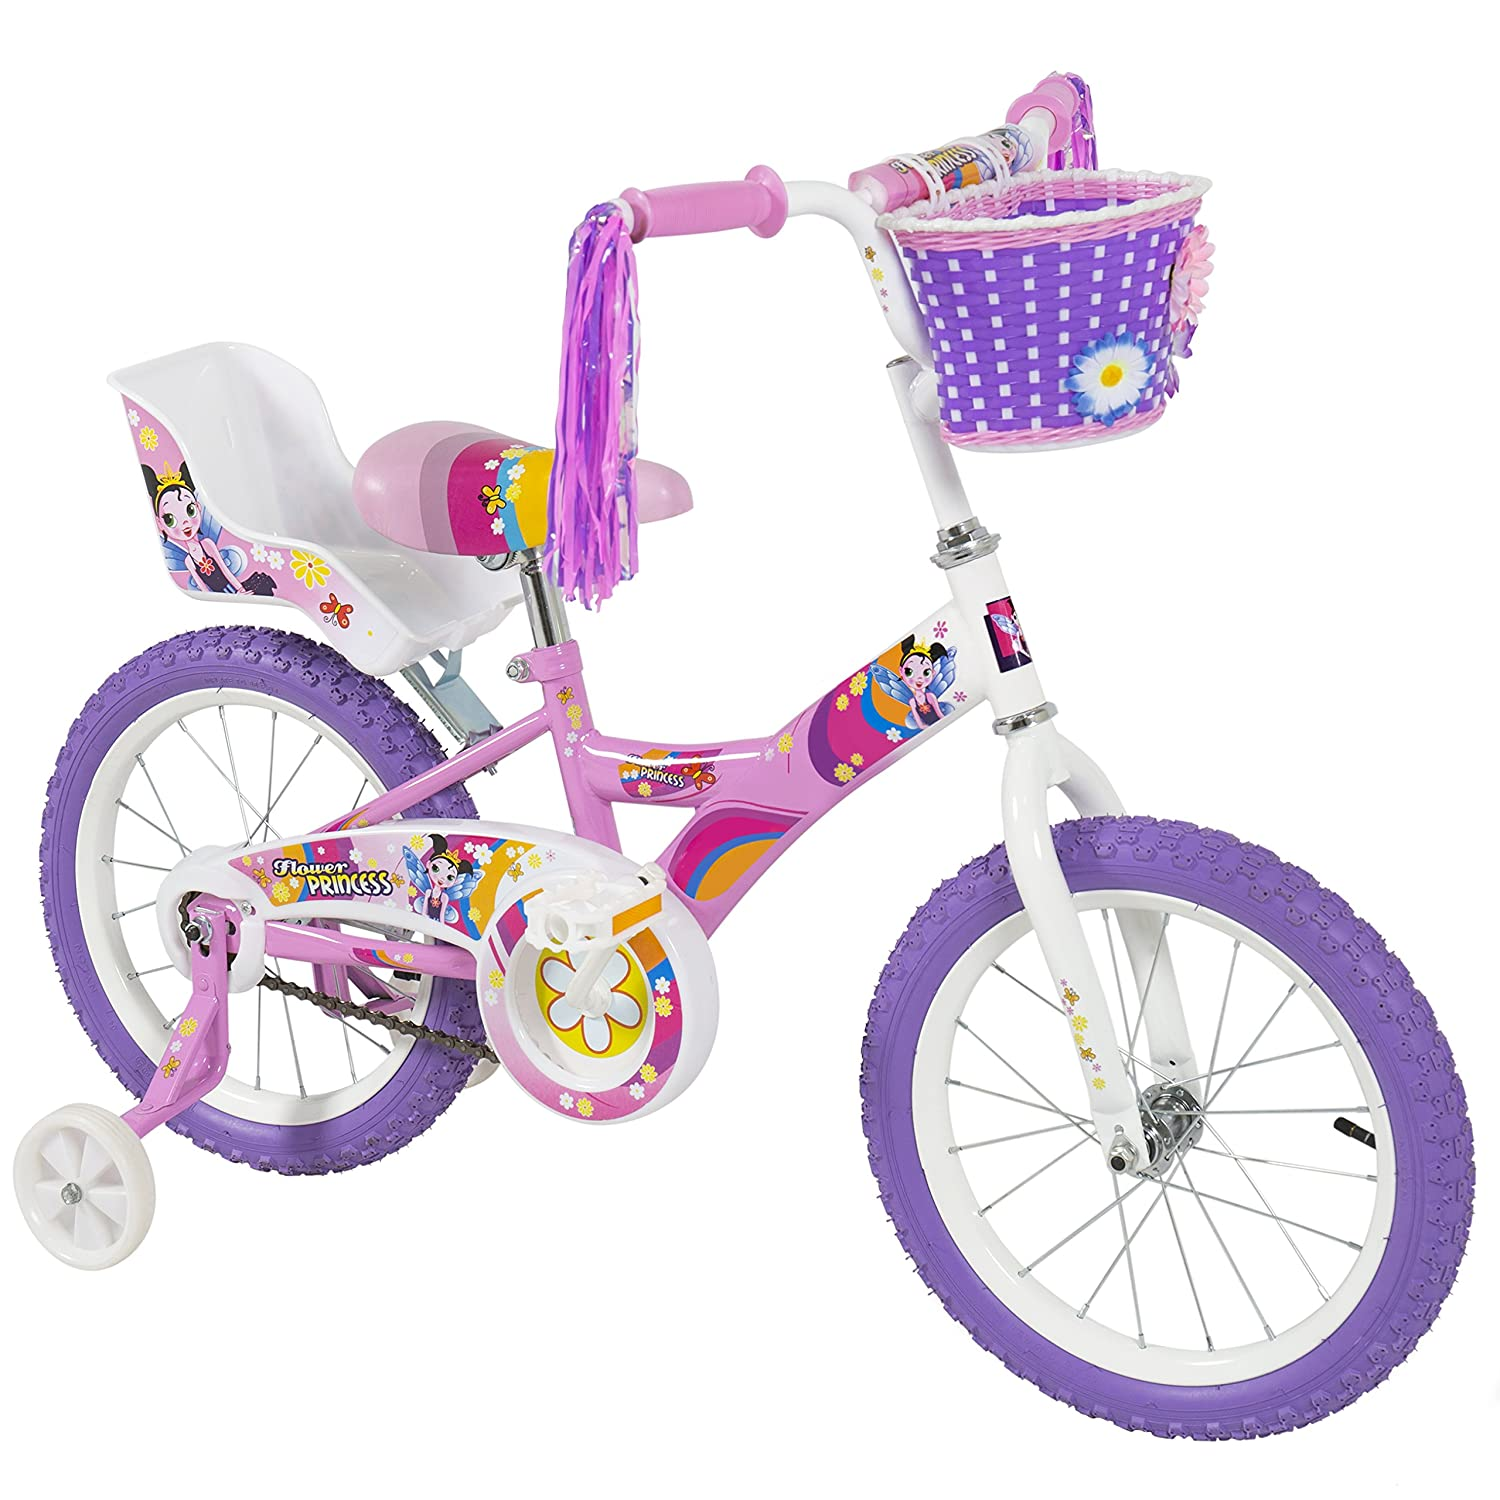 BCP 16 Girl's Flower Princess Bike W/ Training Wheels & Basket Kid's Bicycles by Best Choice Products B01IJGFUZQ